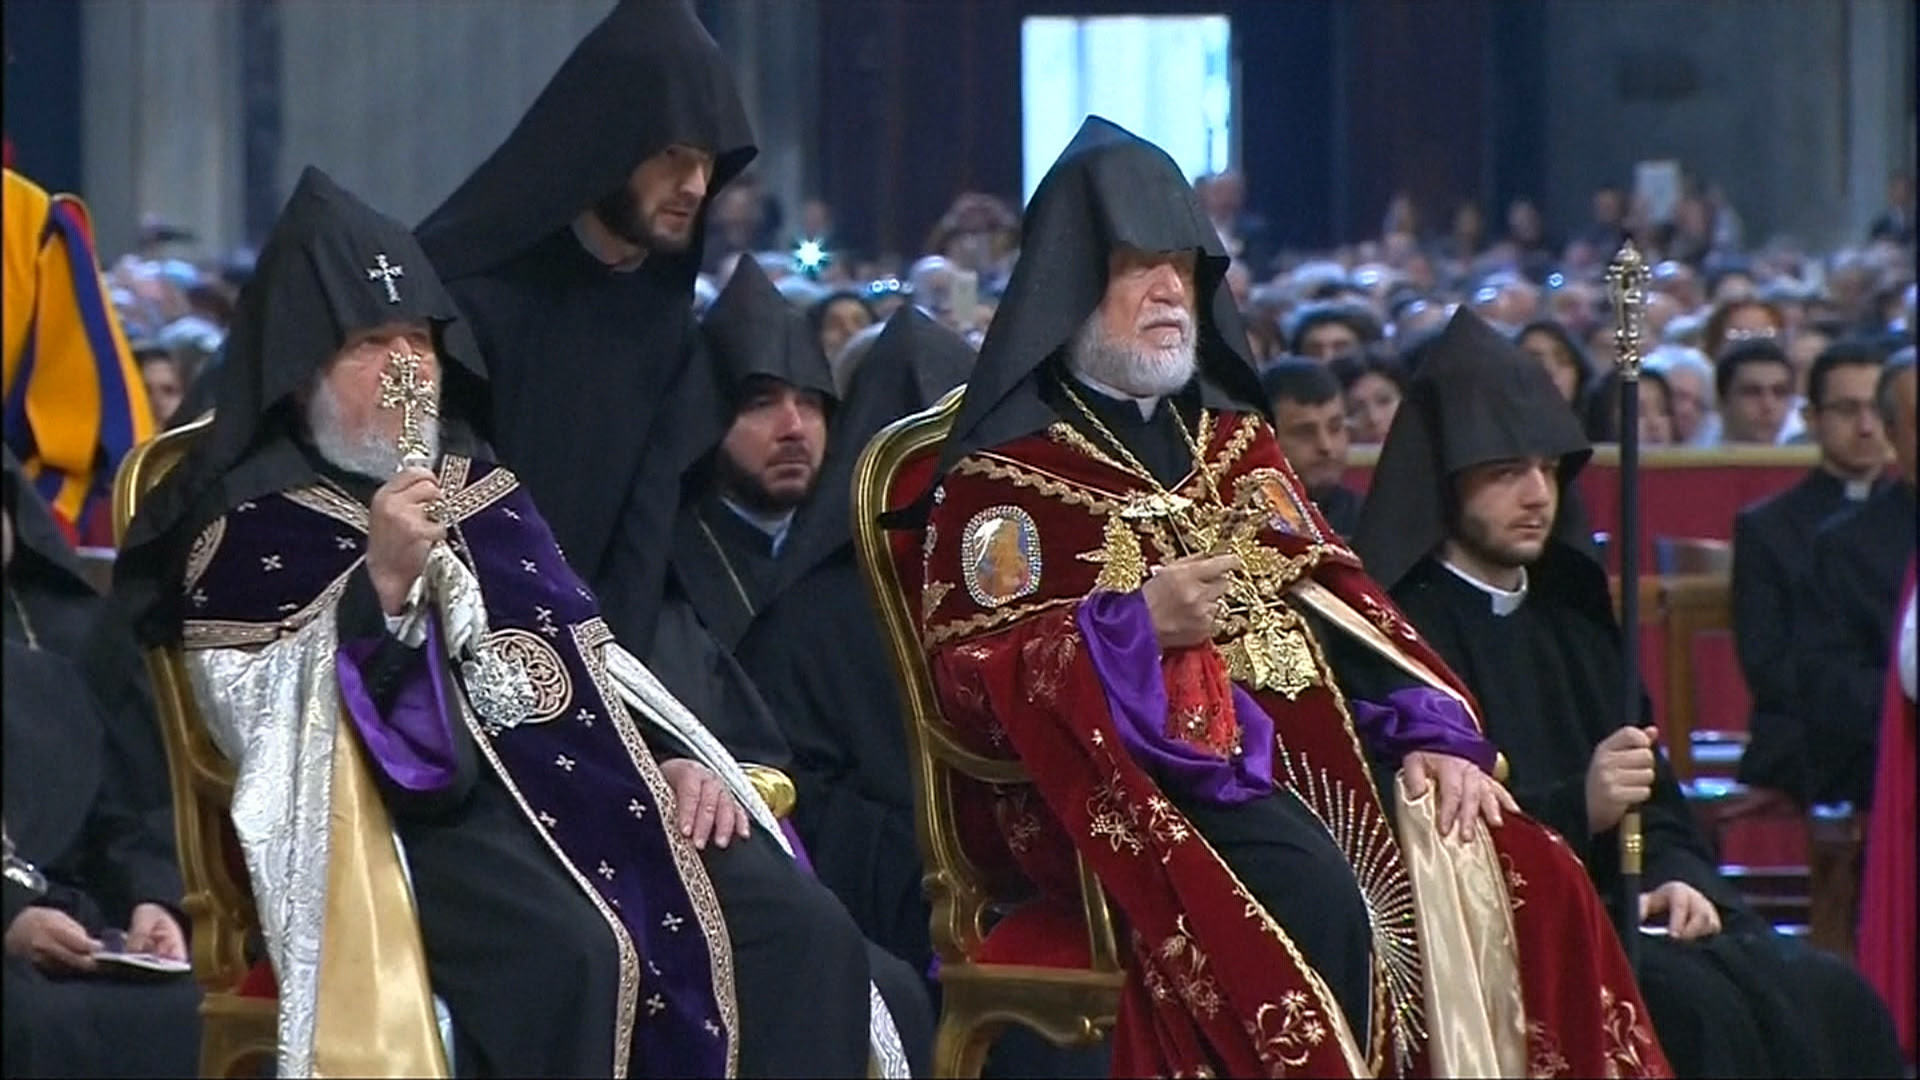 http://media2.s-nbcnews.com/i/MSNBC/Components/Video/__NEW/f_fh_pope_armenians_150412.jpg